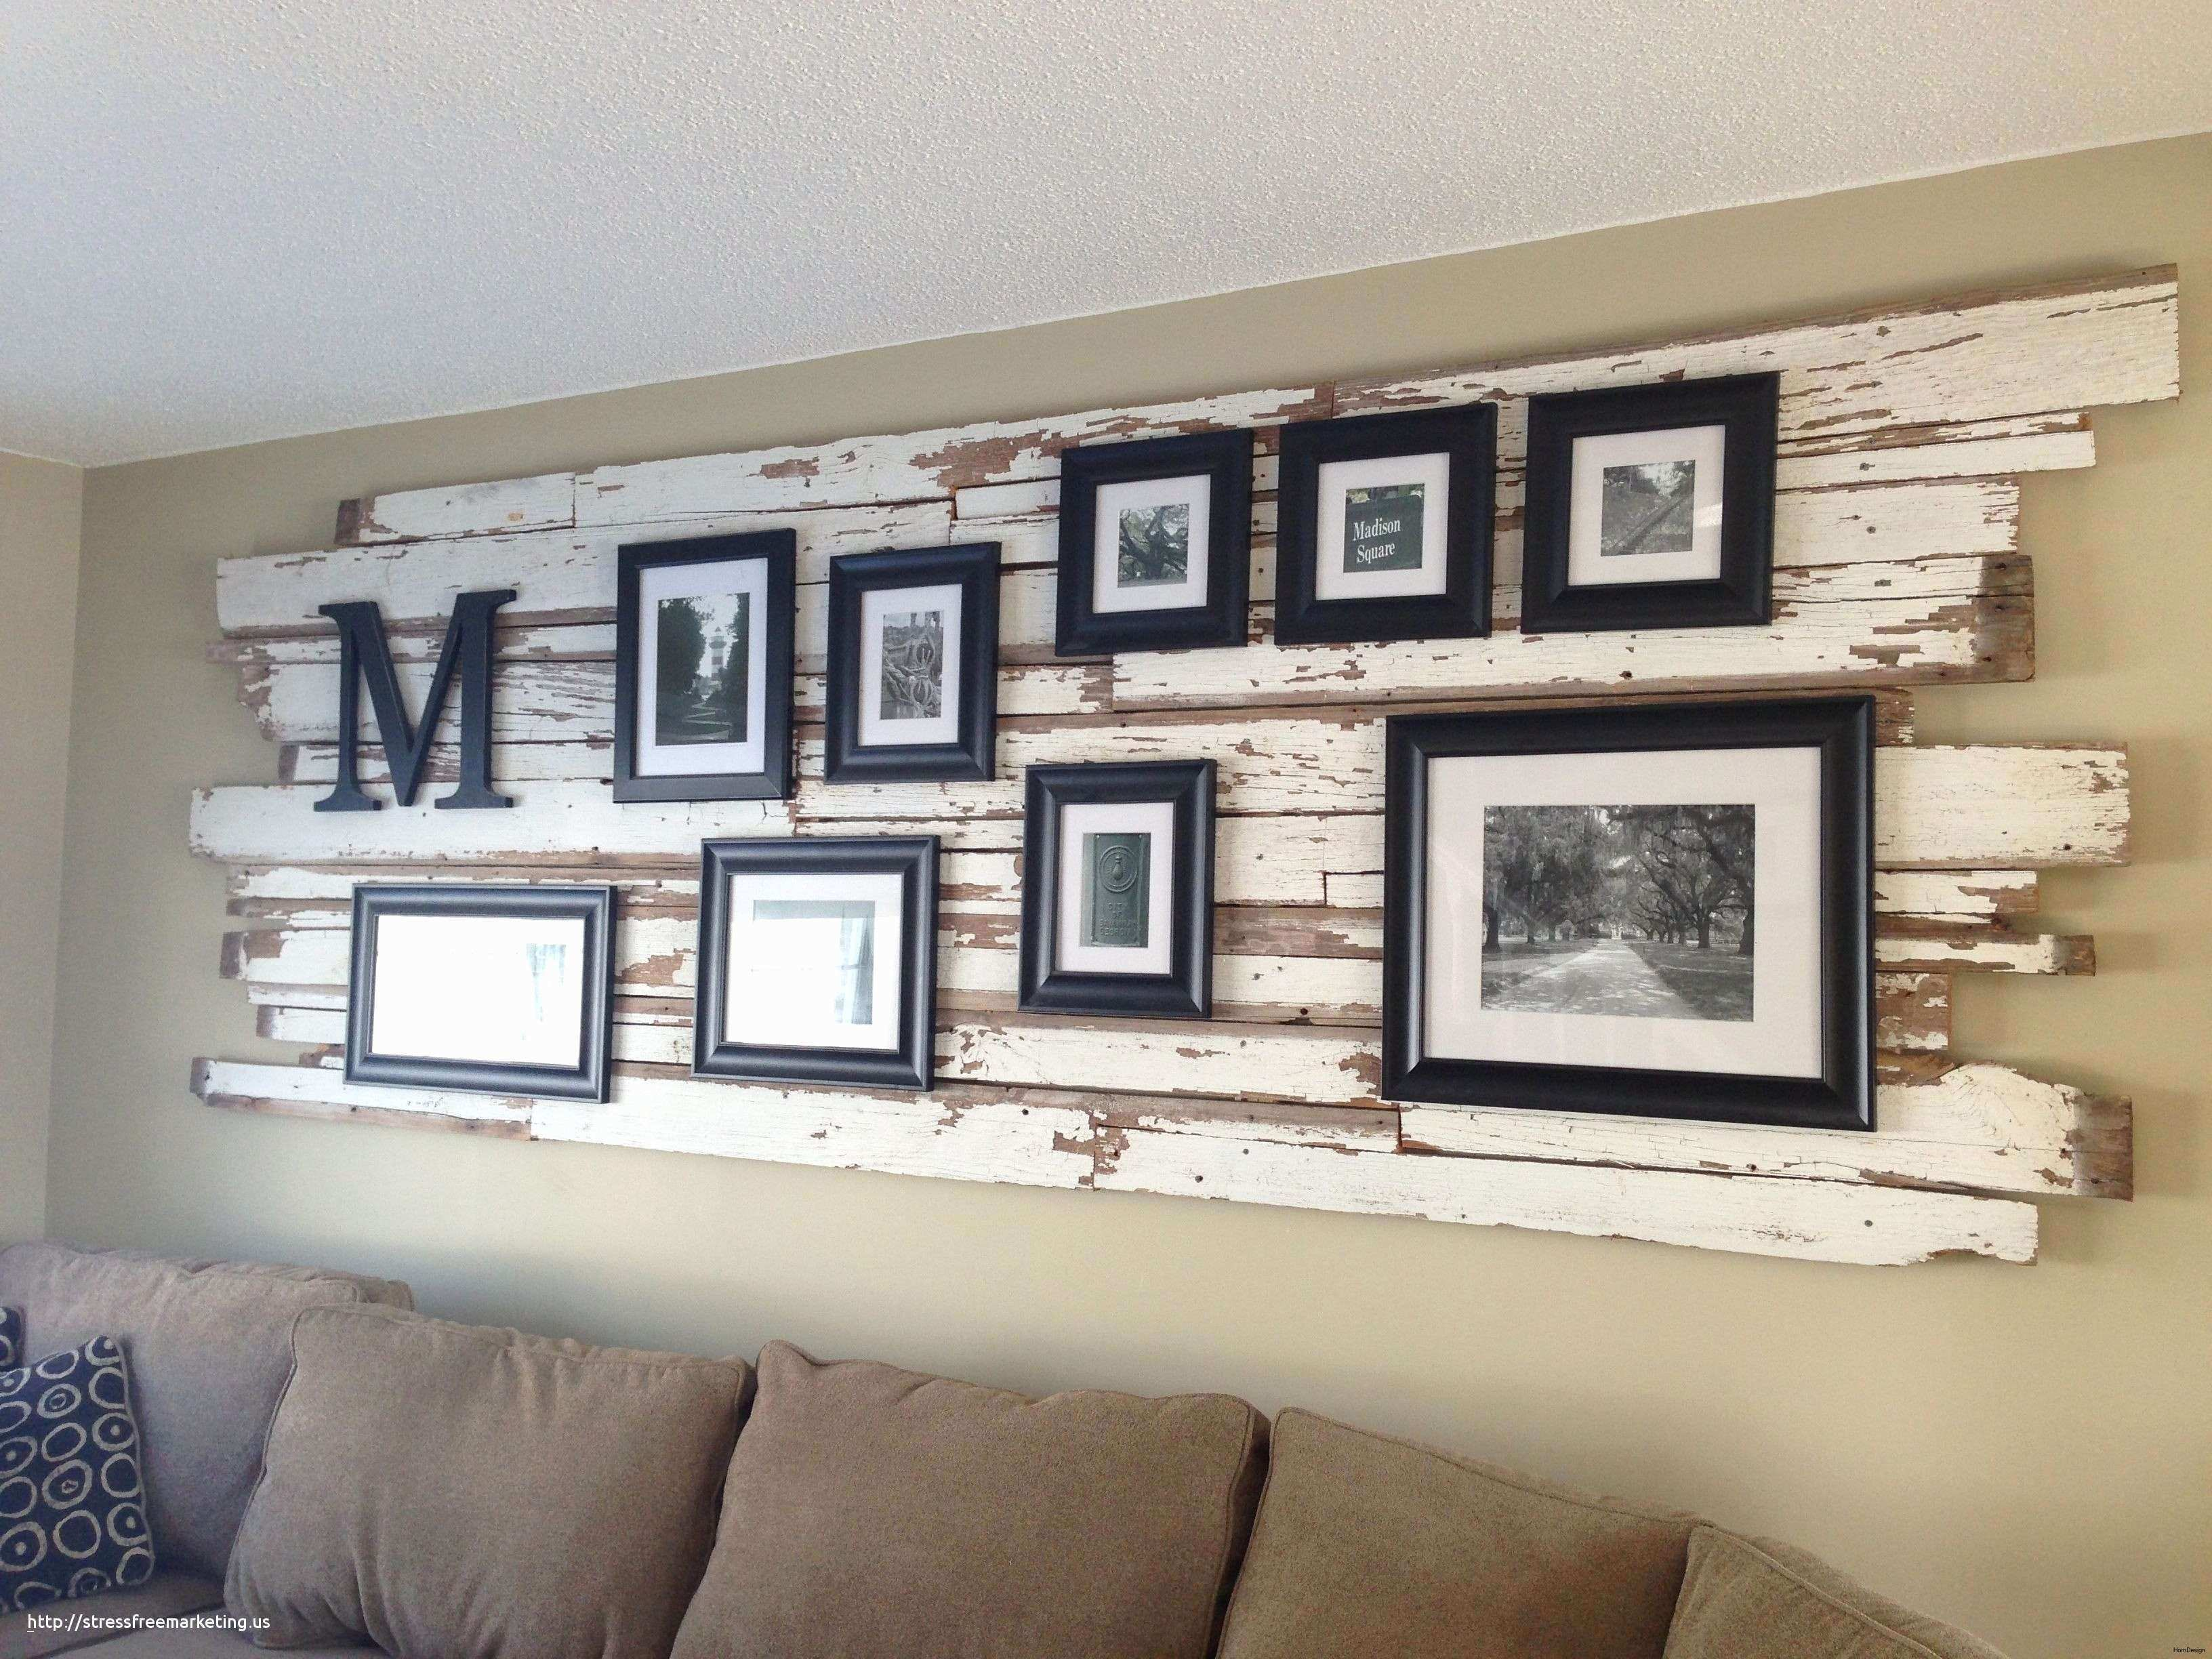 Inspirational Gallery Ideas for Wall ThroughTheLens